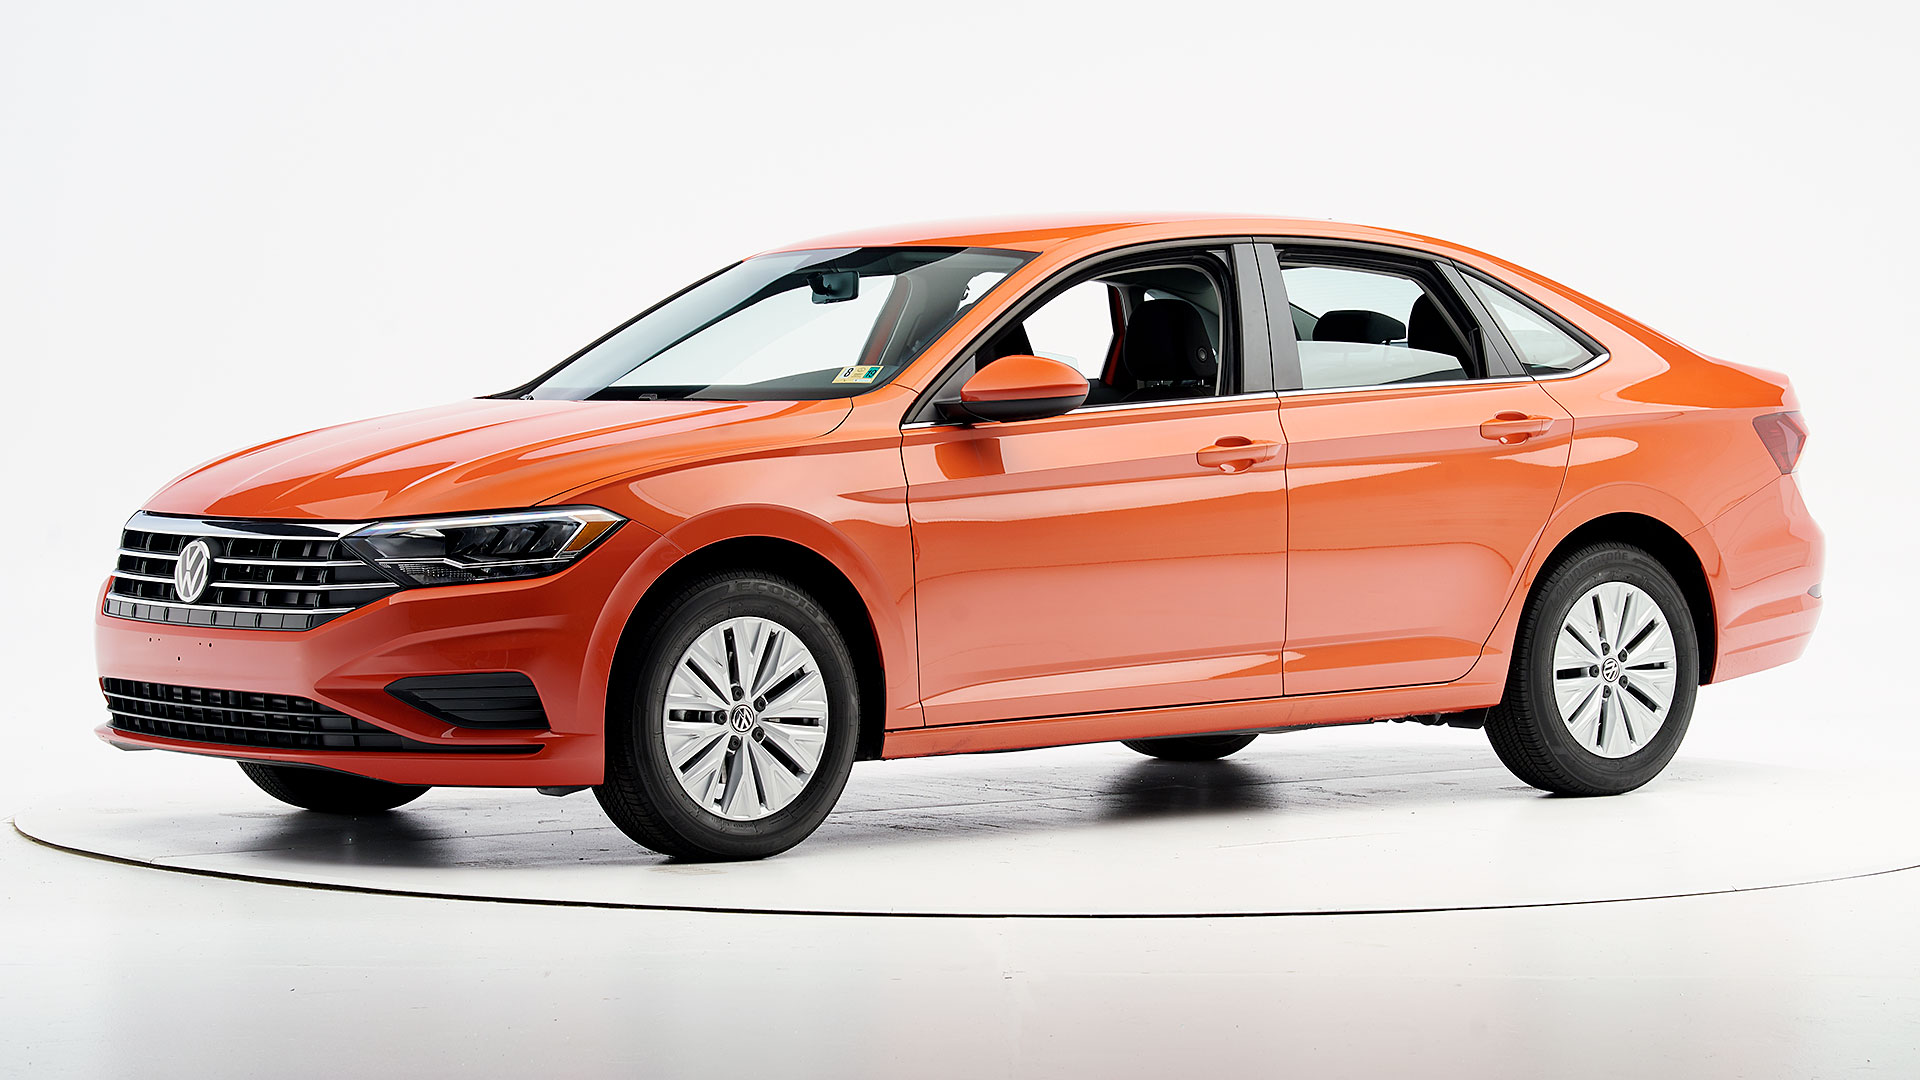 2020 Volkswagen Jetta 4-door sedan